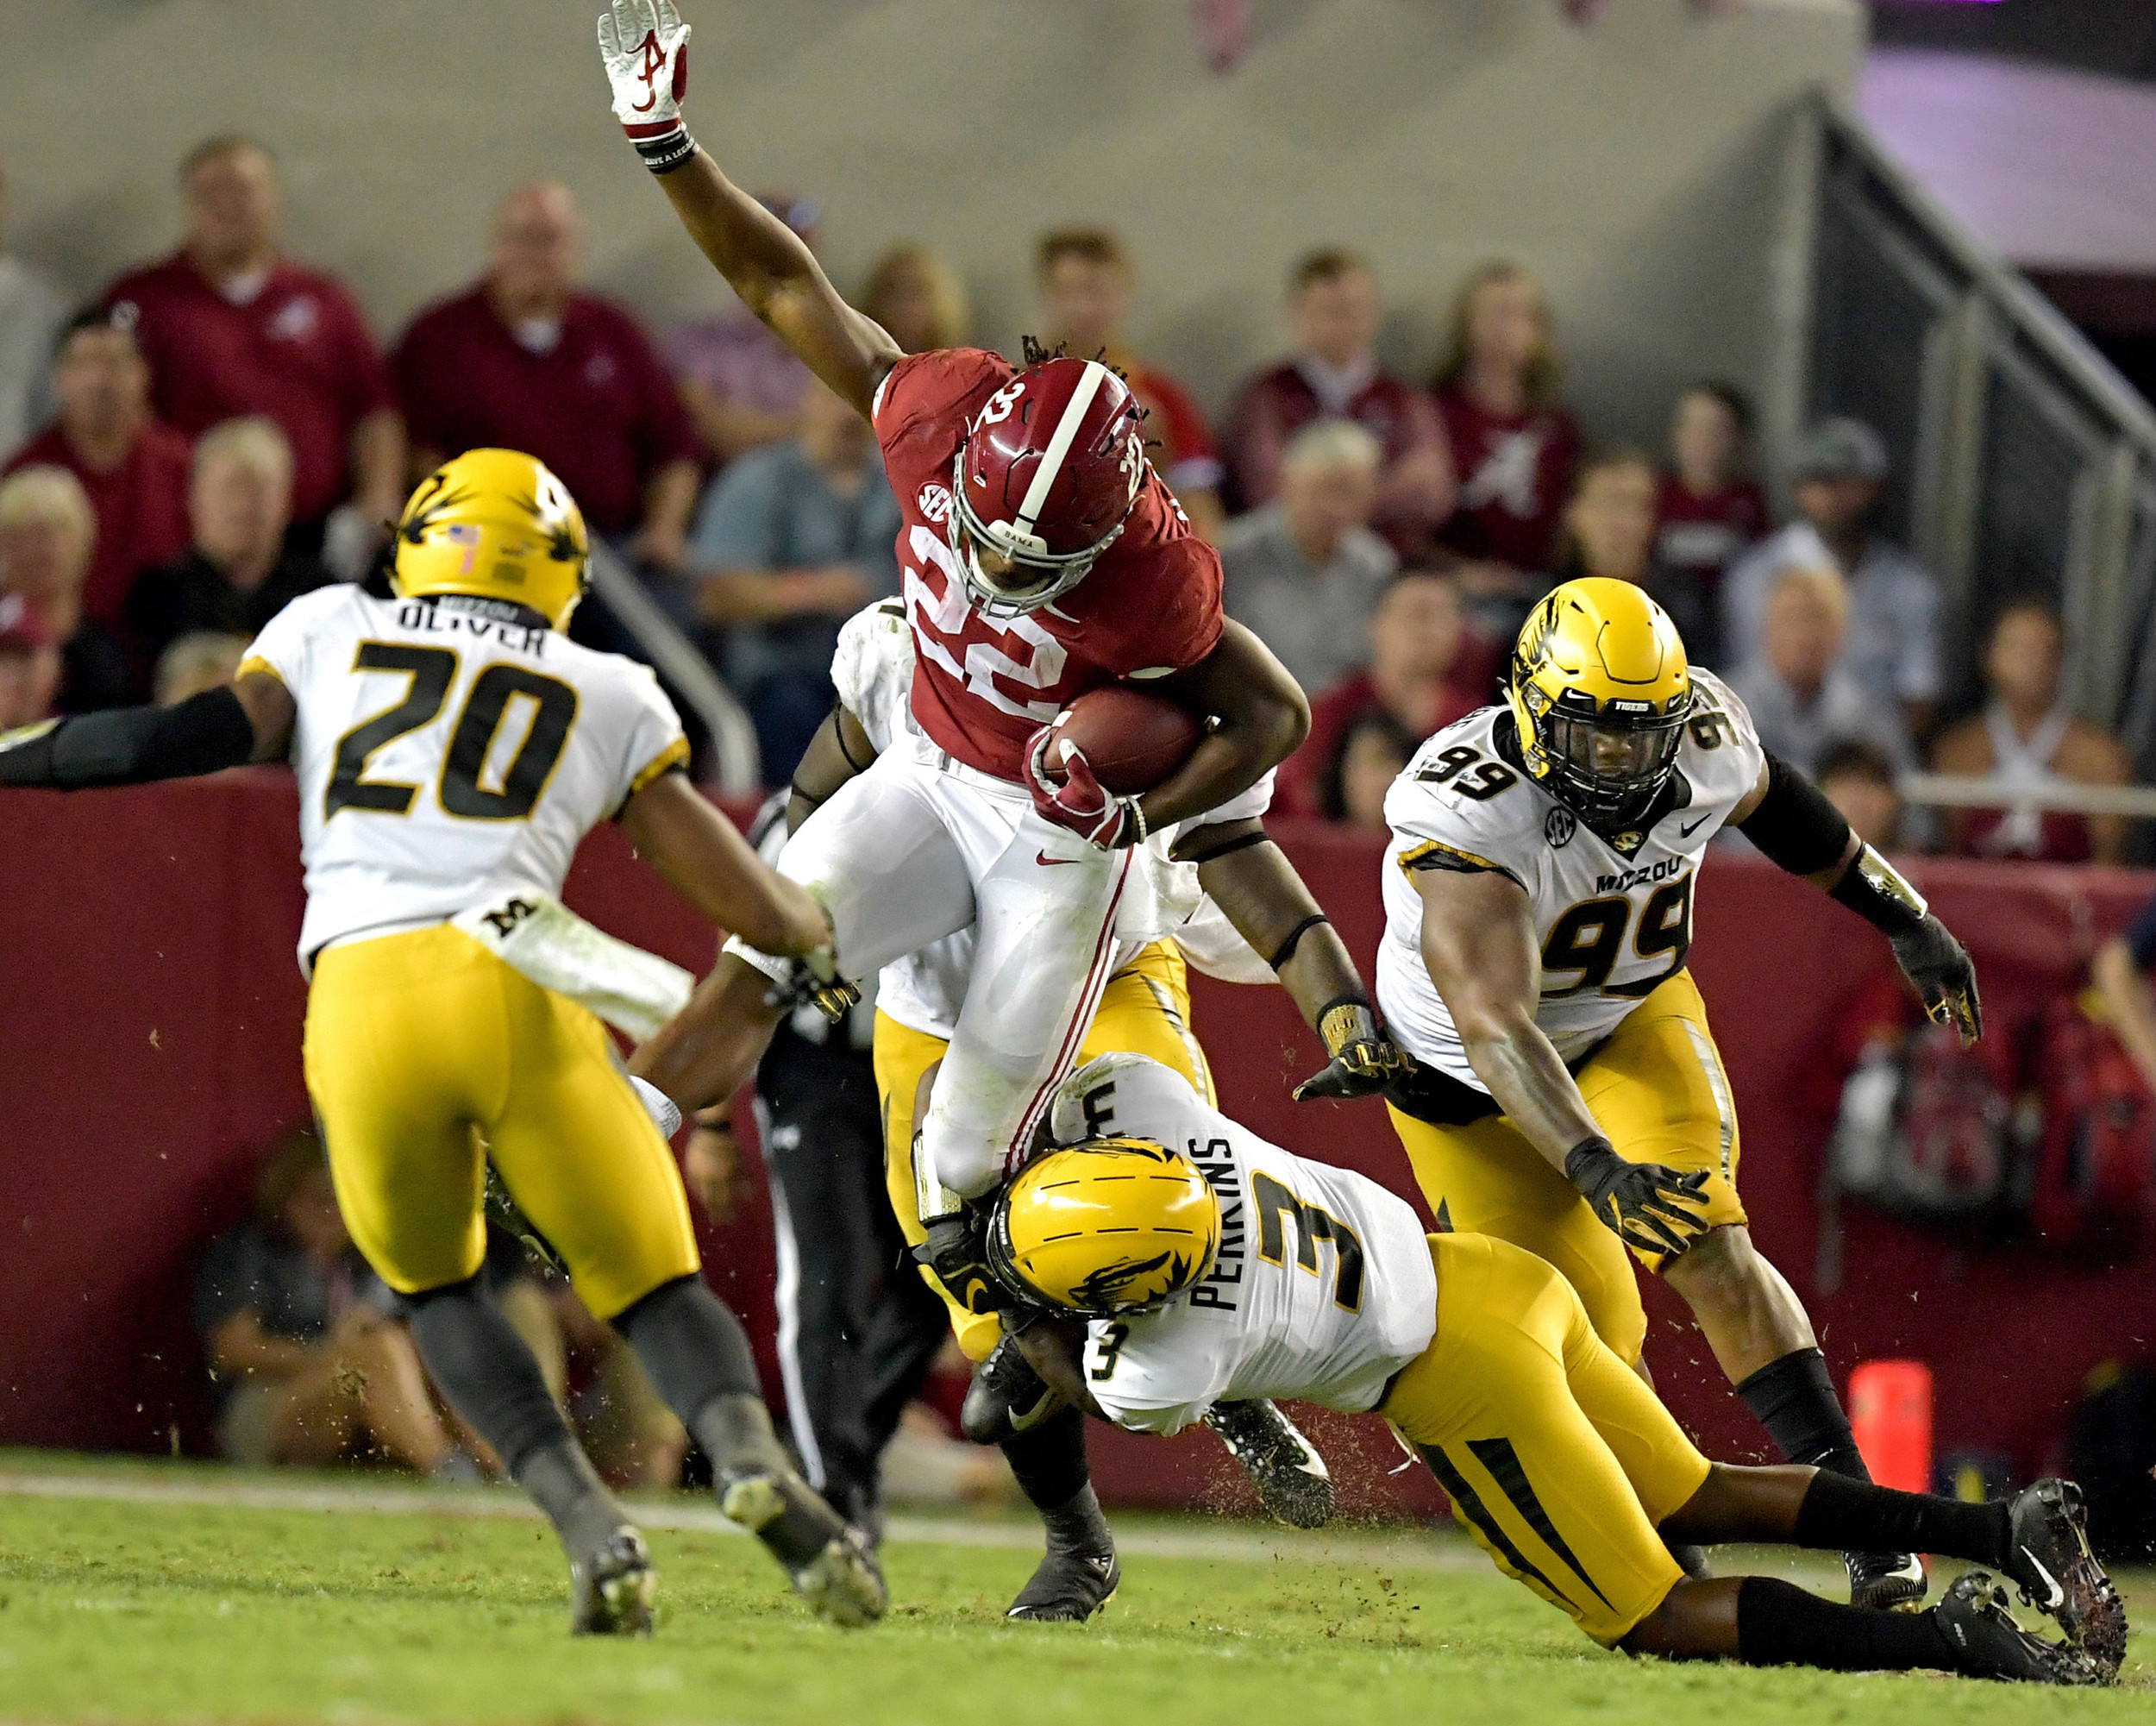 From the second half of the Missouri Tigers versus Alabama Crimson Tide NCAA football game at Bryant-Denny Stadium in Tuscaloosa, Ala., on Oct. 13, 2018. Alabama defeated Missouri 39-10. (Photo by Lee Walls)